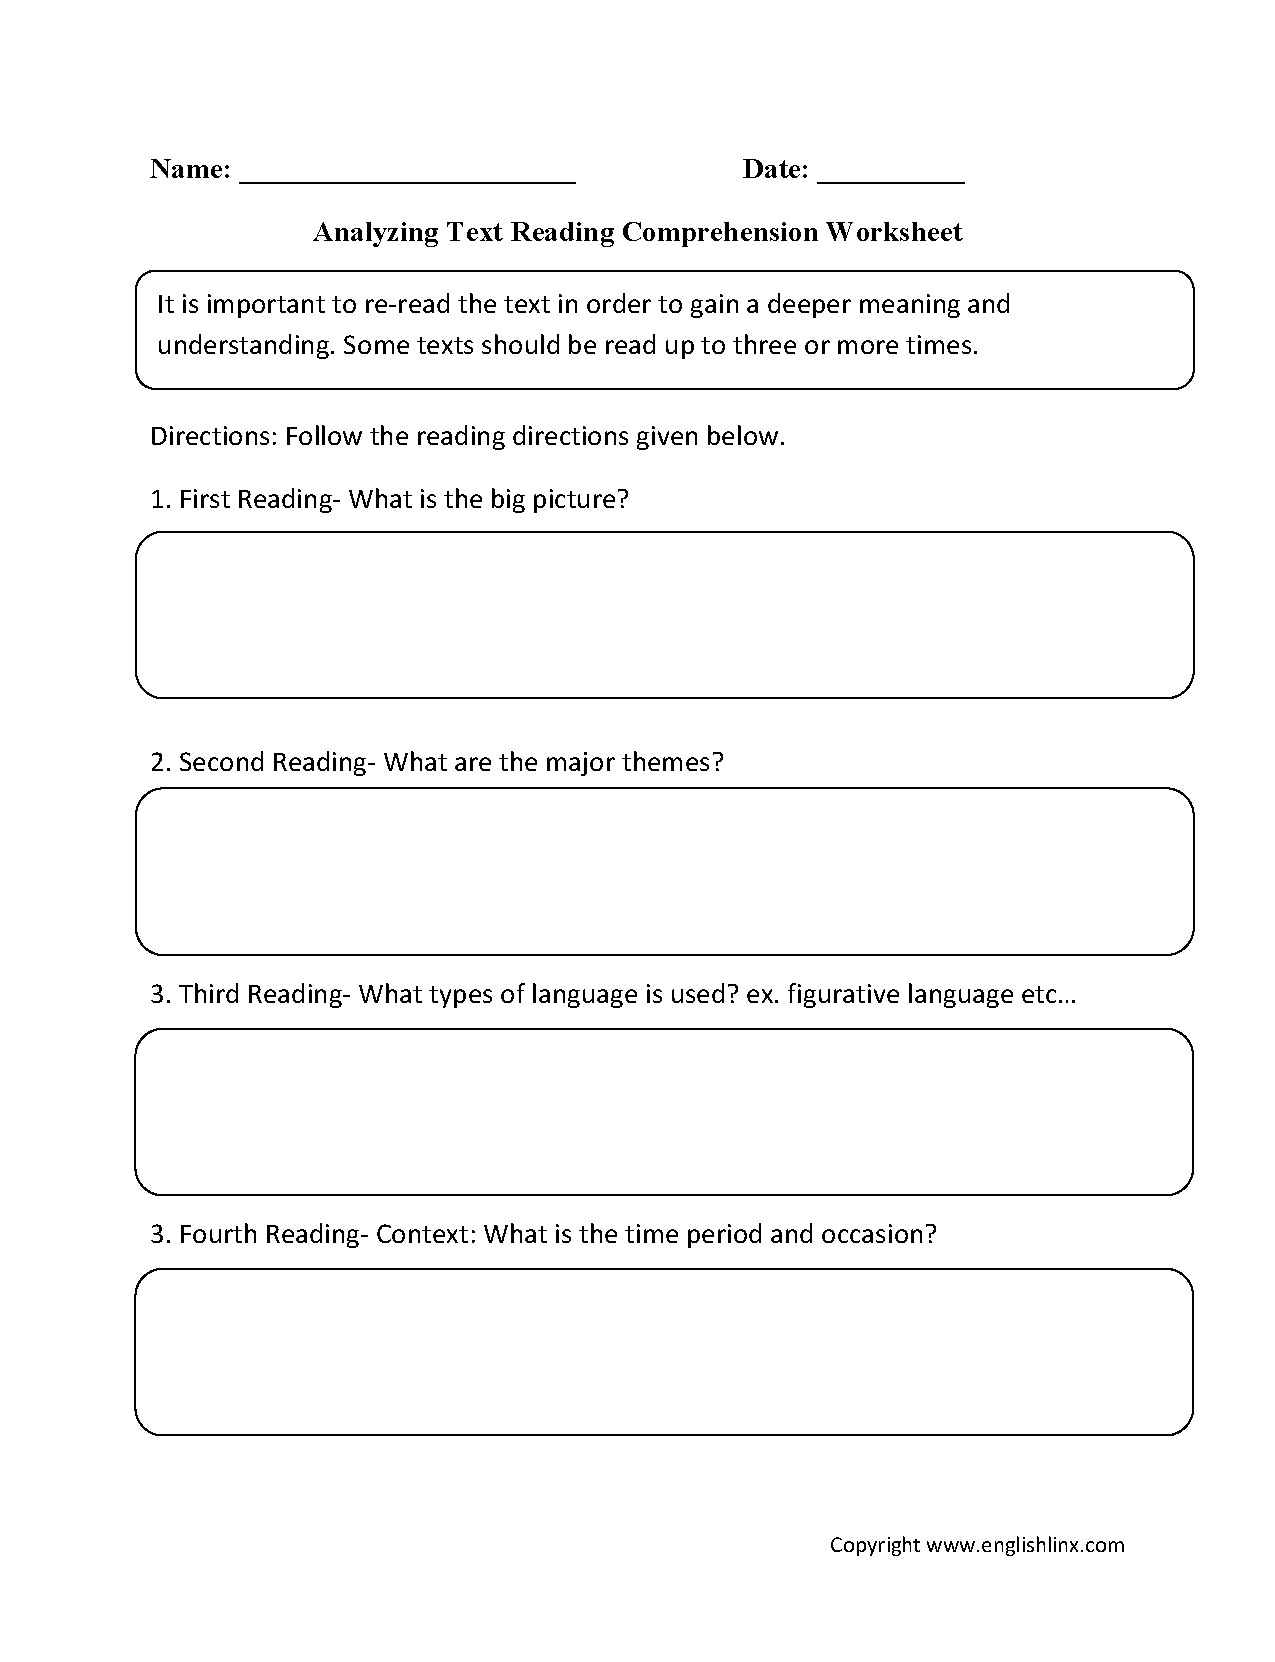 Worksheets 3rd Grade Reading Comprehension Worksheet englishlinx com reading comprehension worksheets worksheets